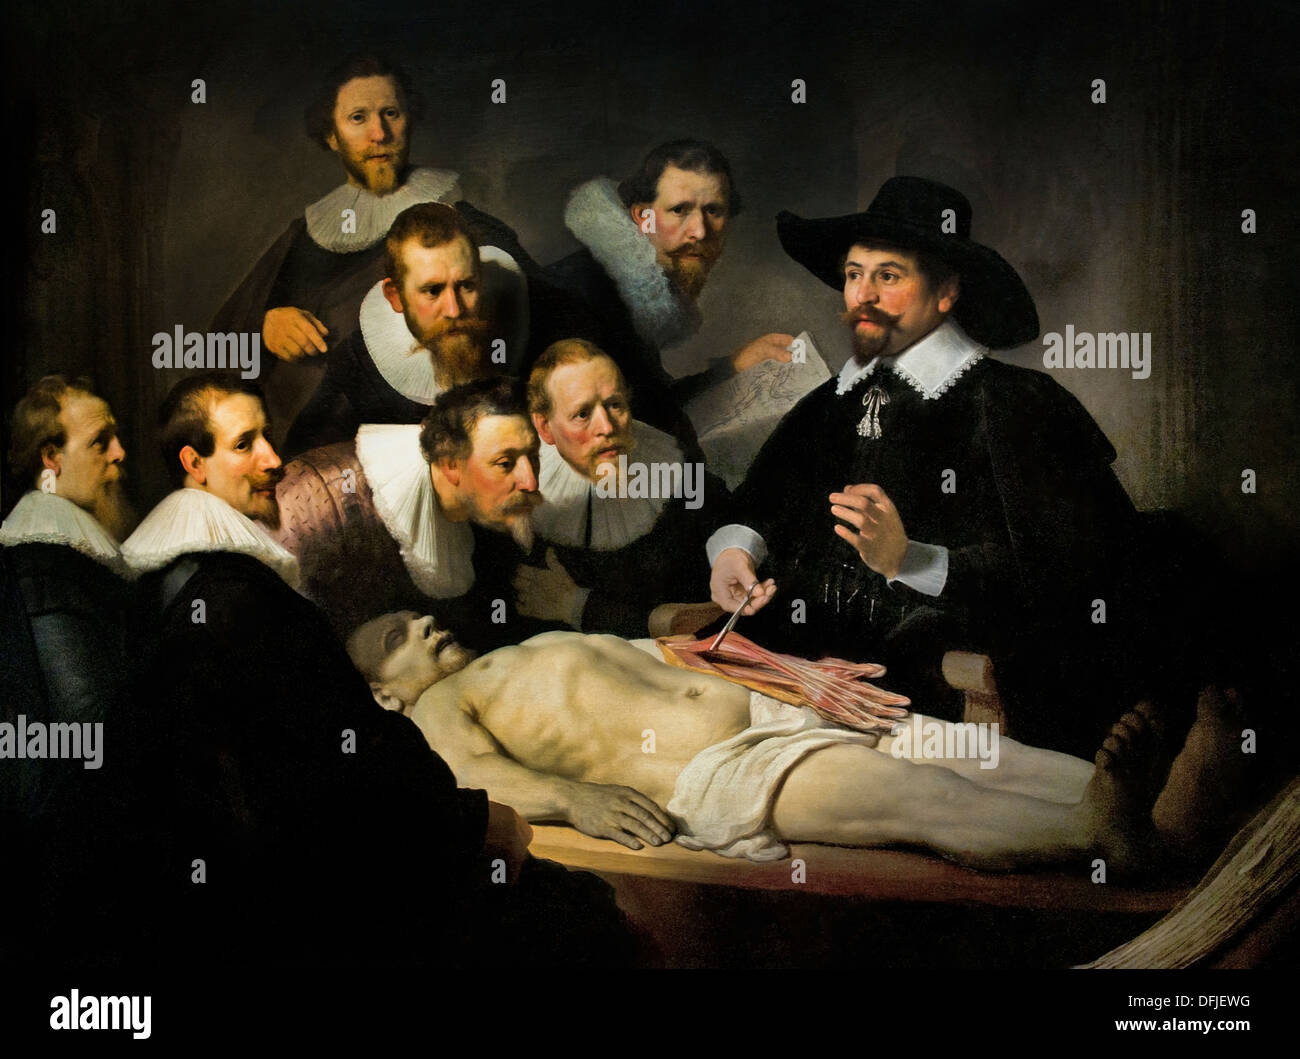 The Anatomy Lesson Stock Photos & The Anatomy Lesson Stock Images ...